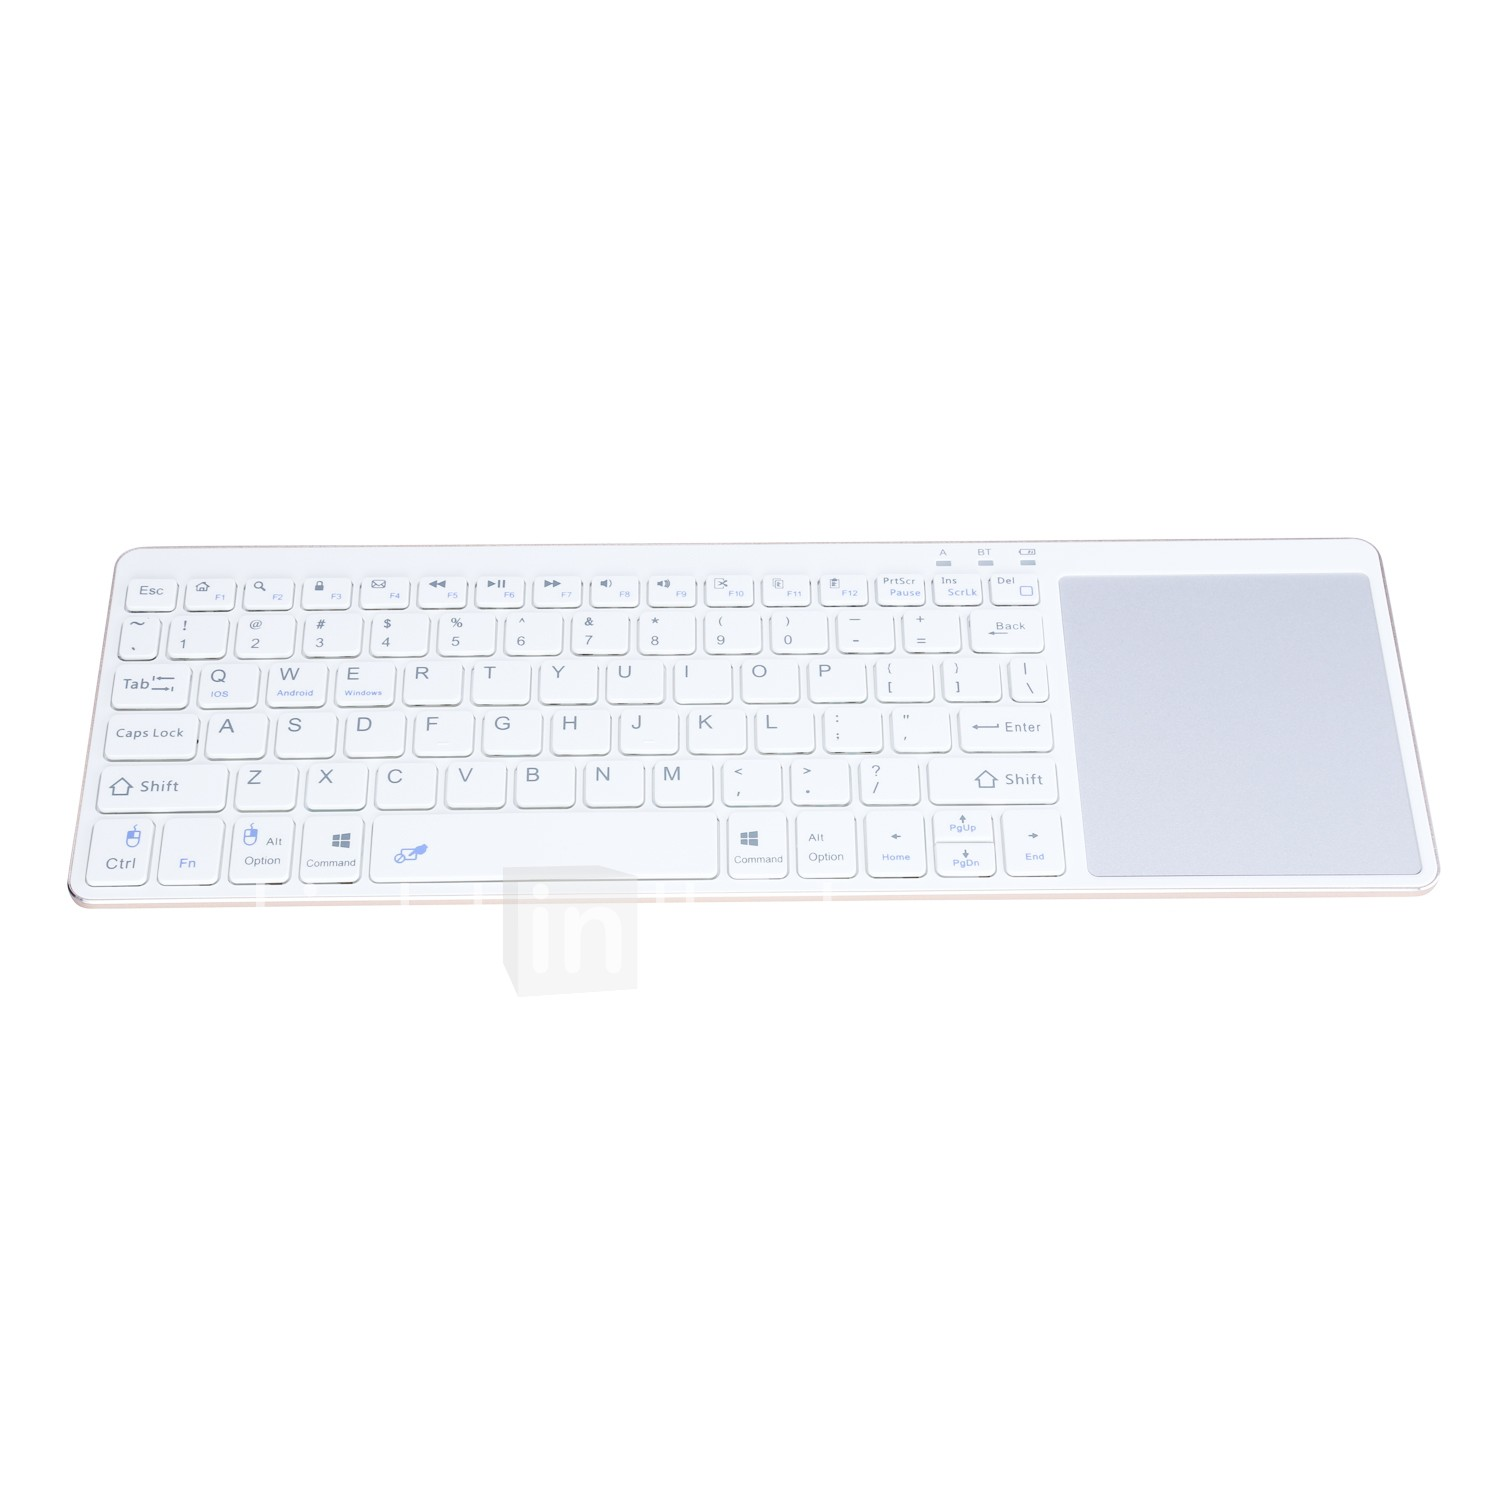 iPazzPort Bluetooth Keyboard Ultra Slim Portable Wireless Keyboard with  Touch Pad for IOS Android Windows Tablet and Smart Phone KP-810-65BT